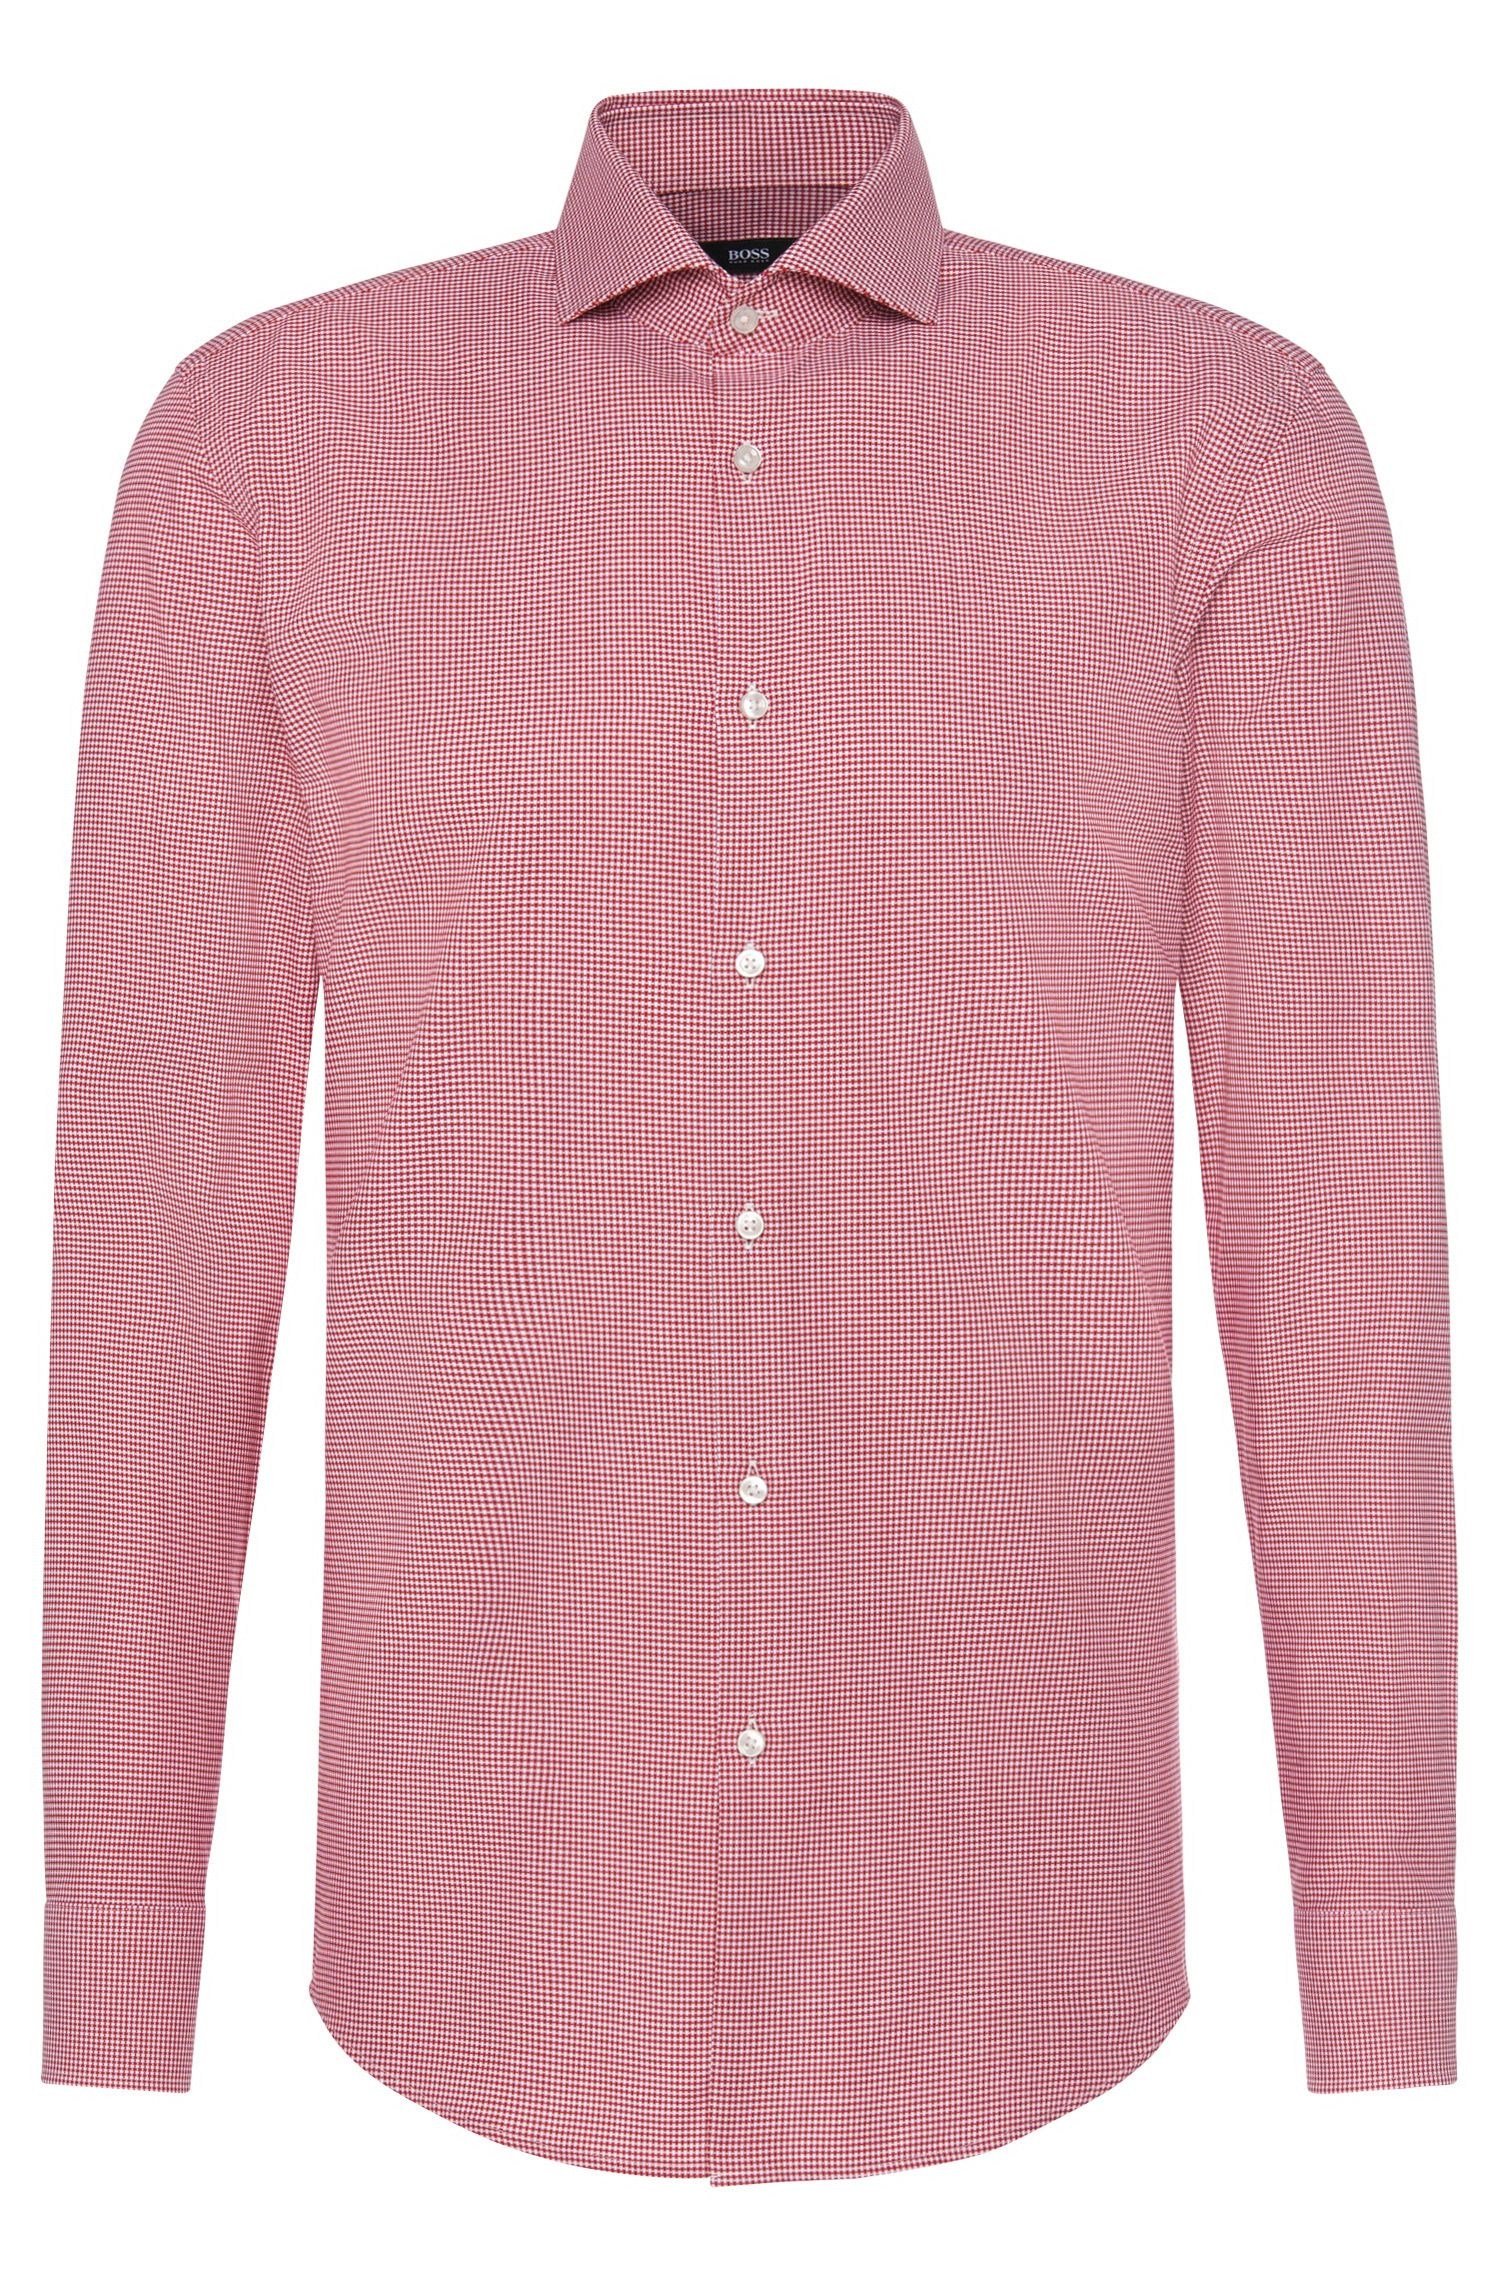 'Jason' | Slim Fit, Cotton Dress Shirt